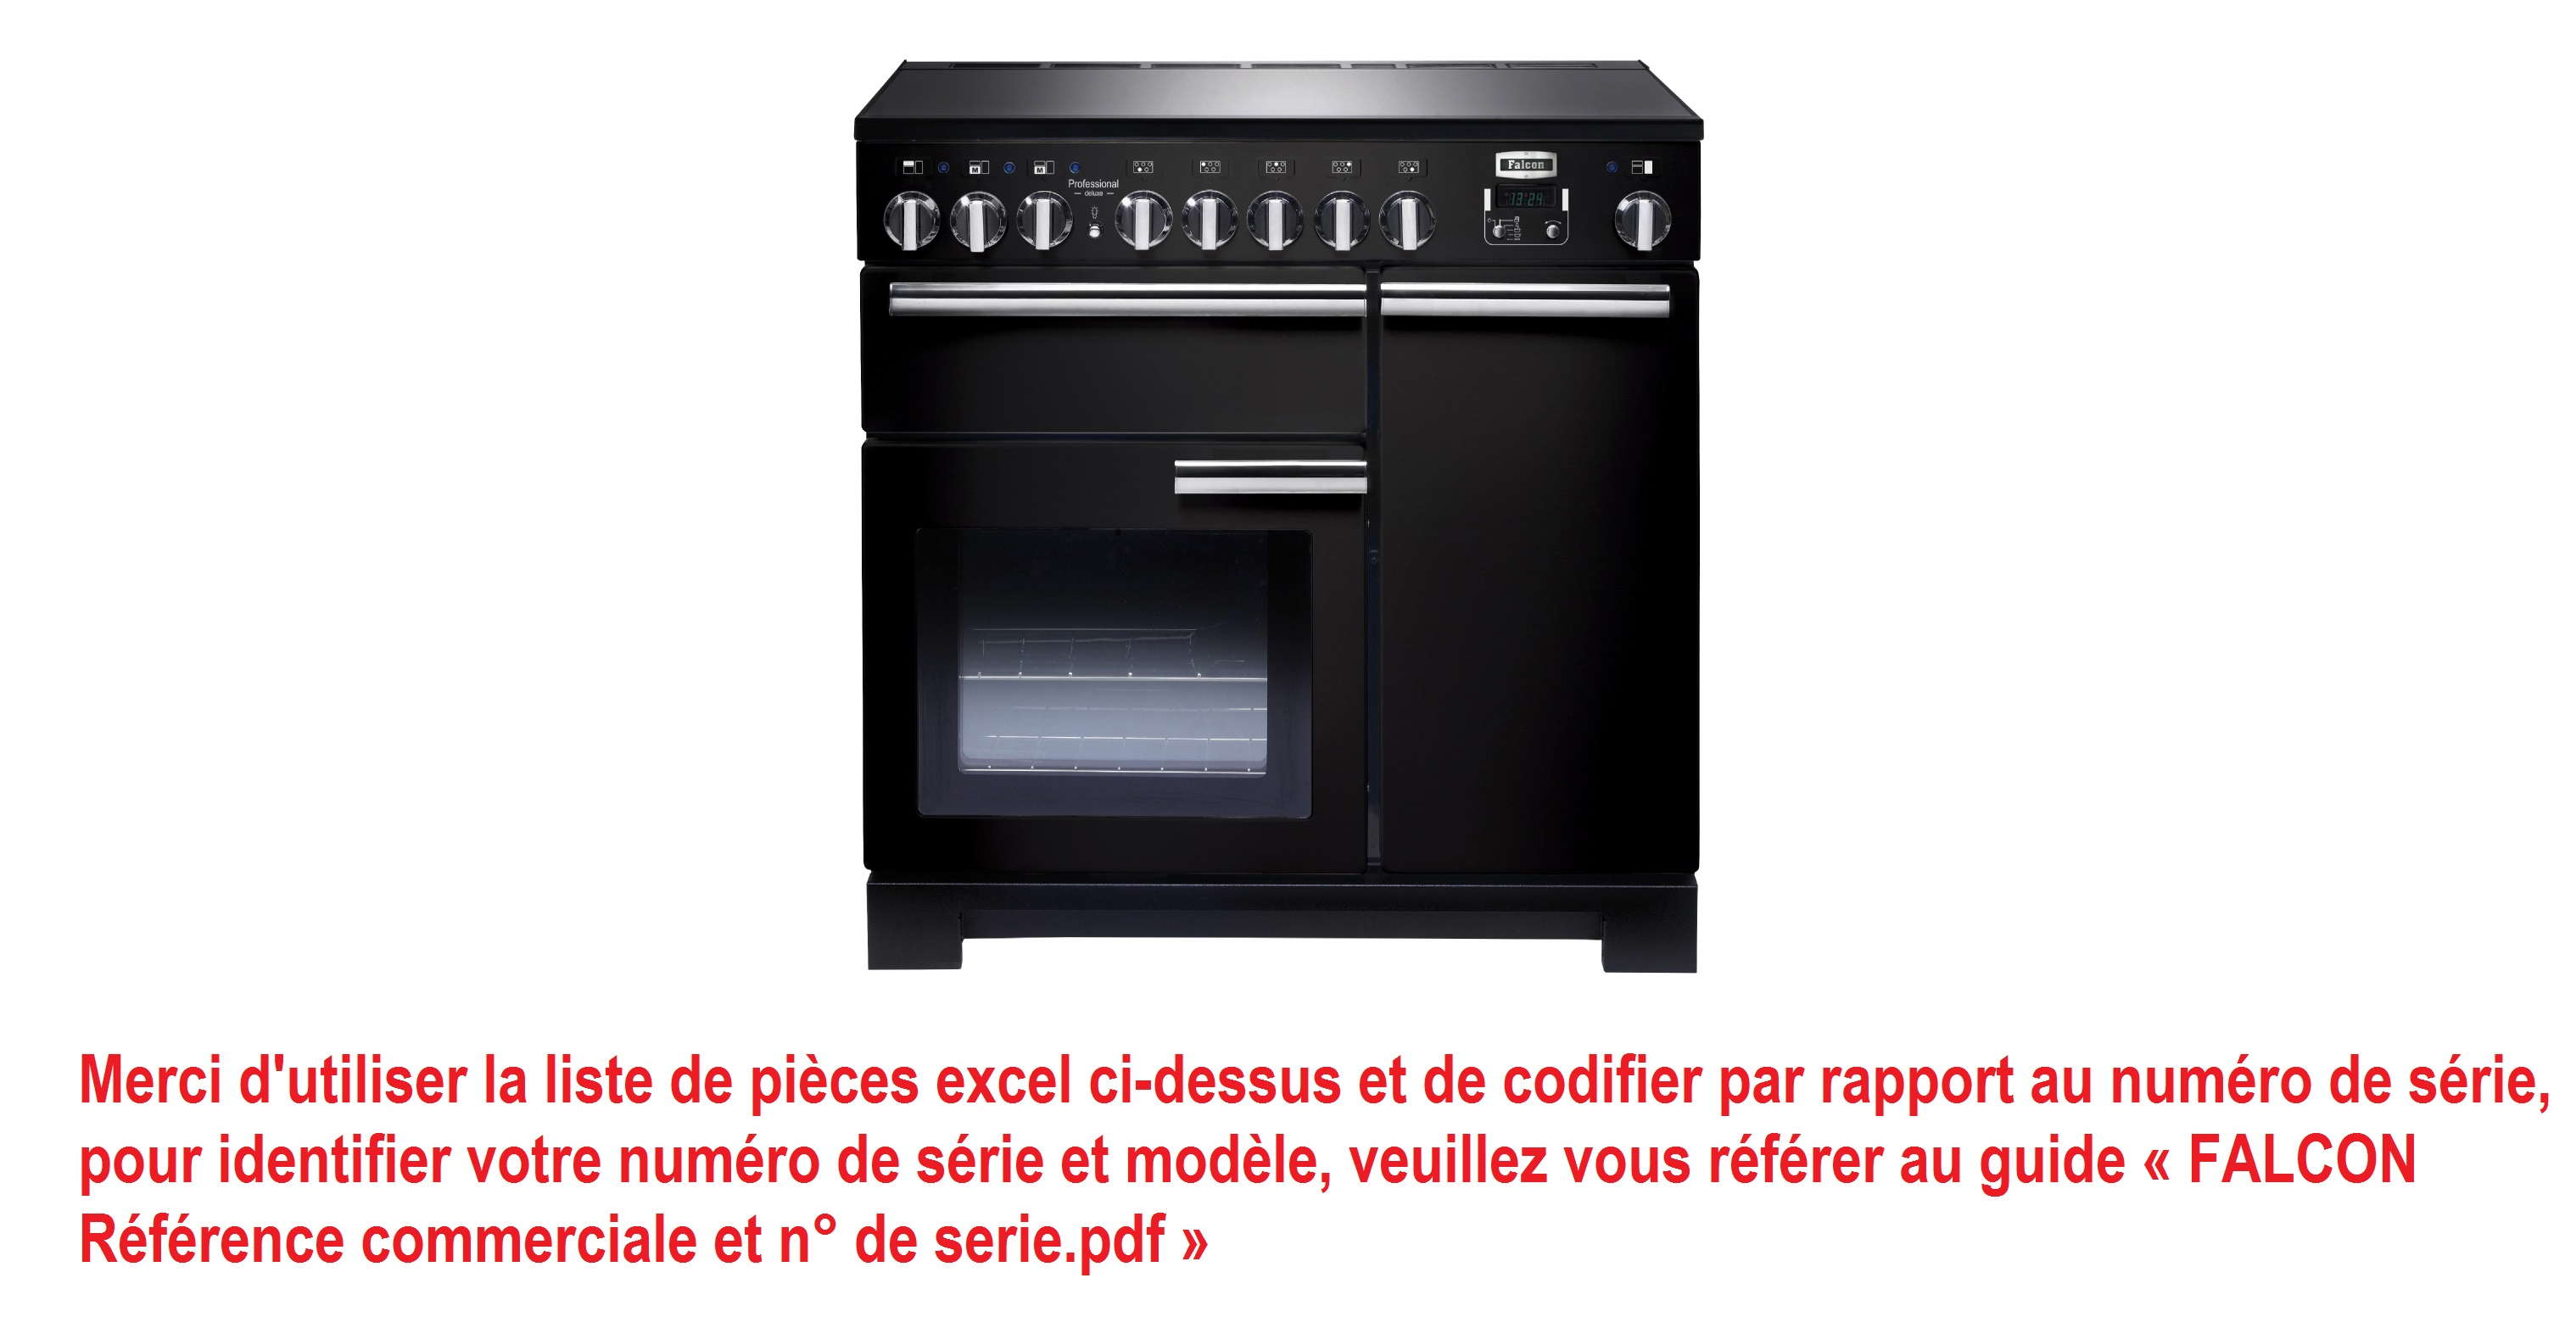 Professional Deluxe 90 Induction - DSL699 - SN apres n°186000